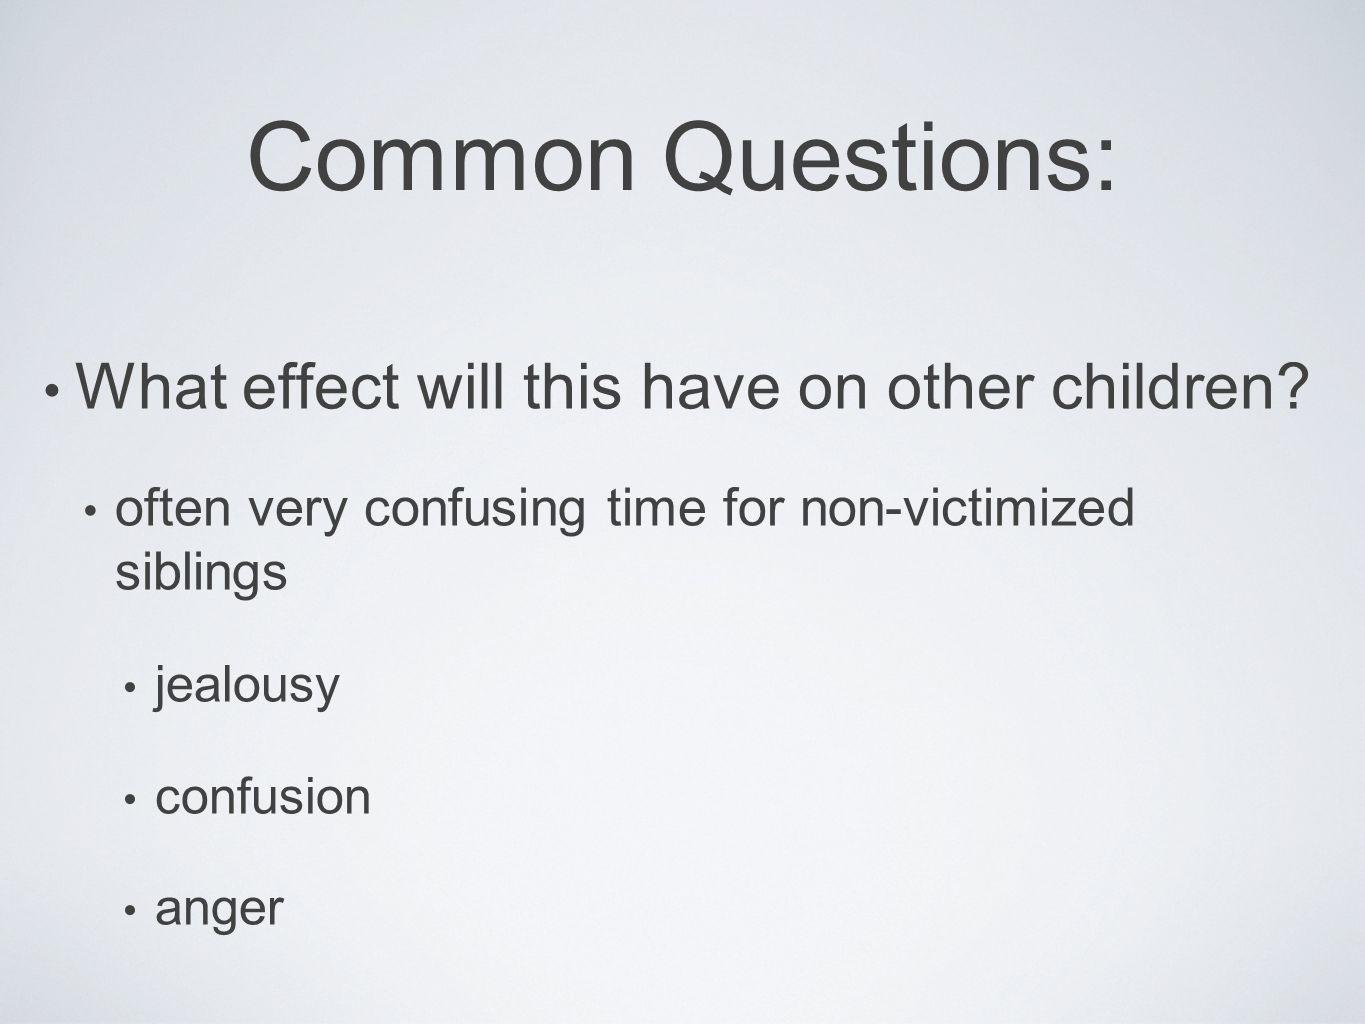 Common Questions: What effect will this have on other children